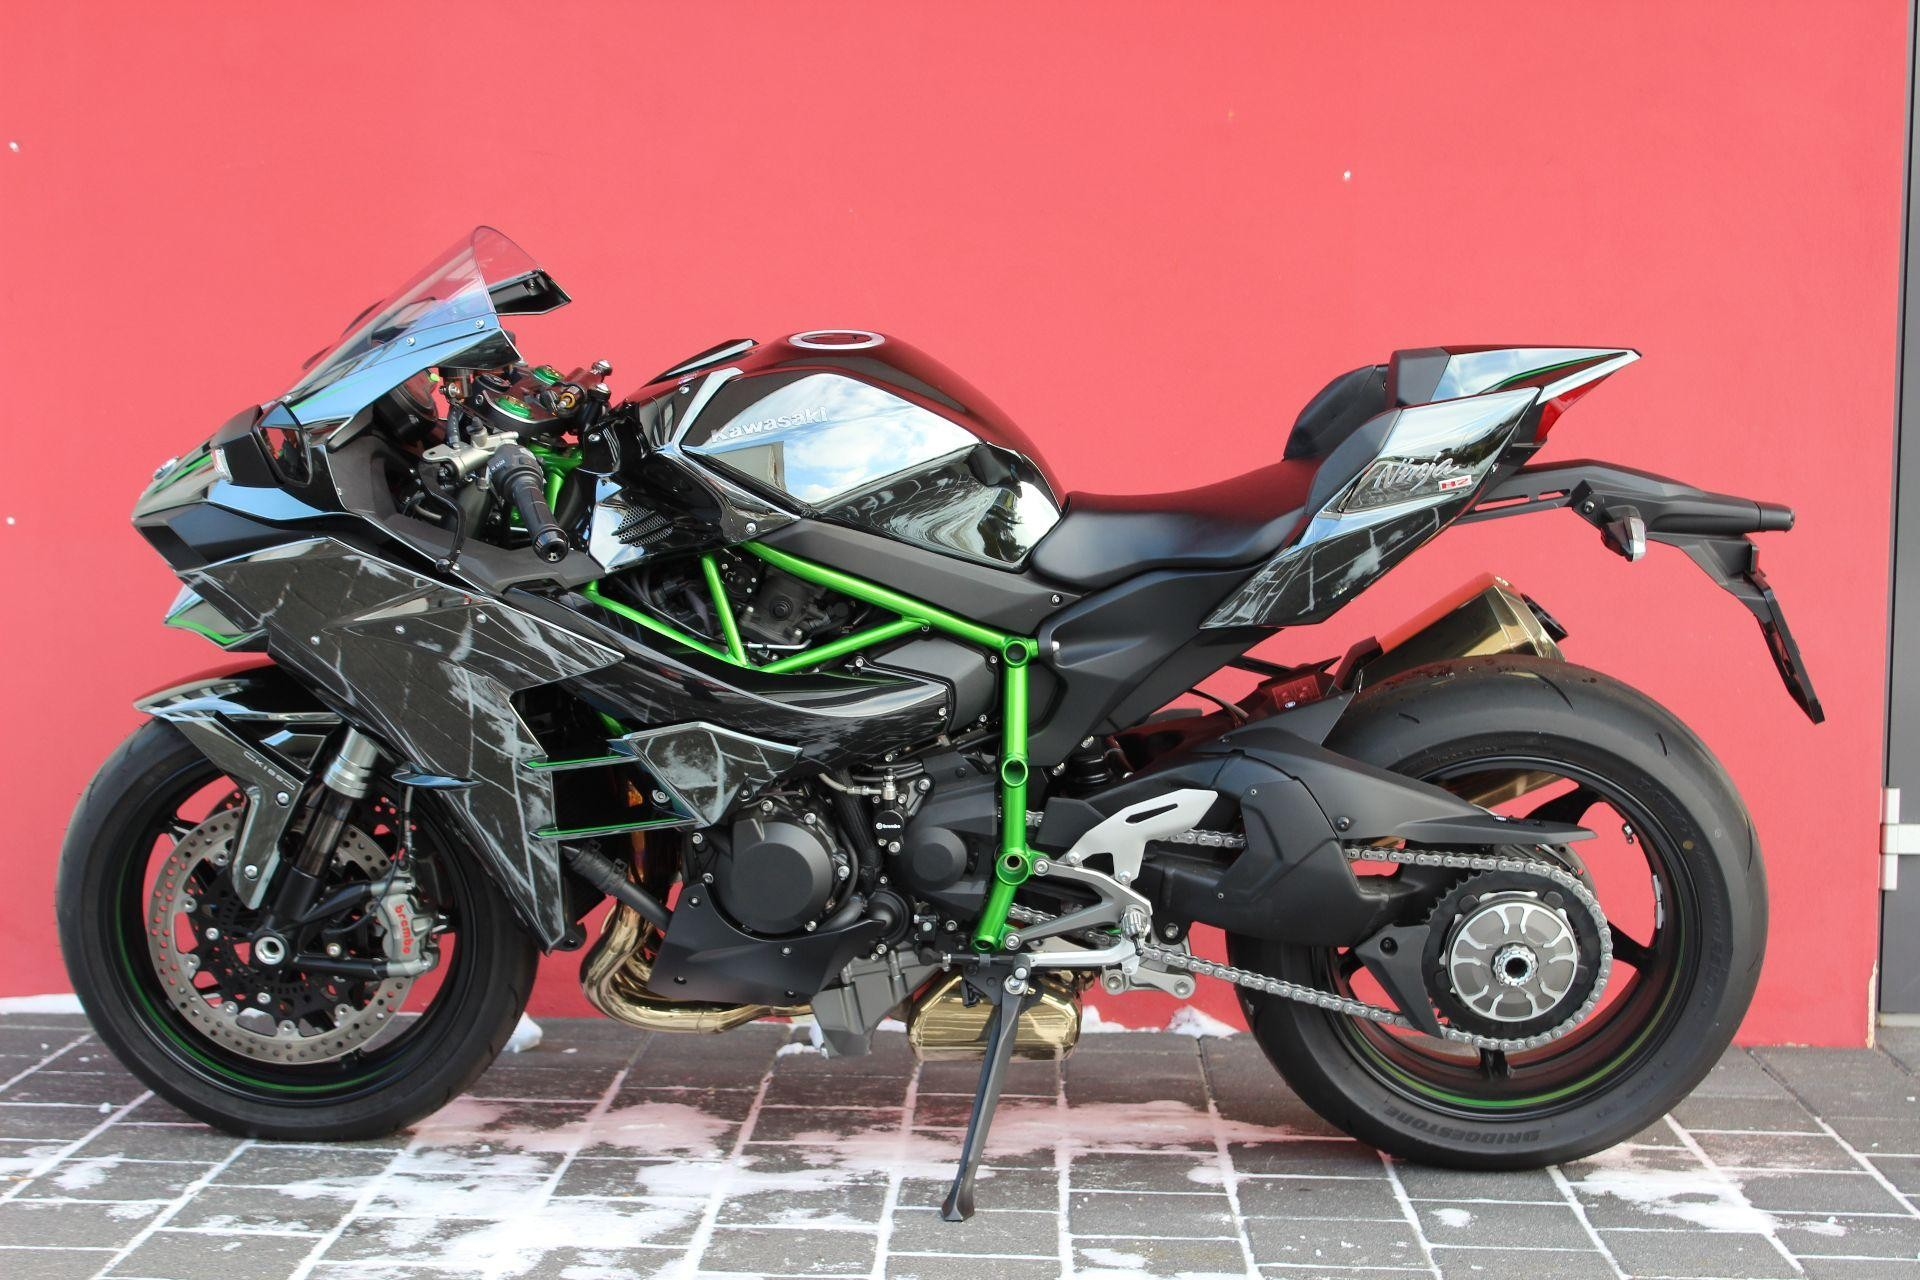 moto neuve acheter kawasaki ninja h2 hans leupi gmbh meggen. Black Bedroom Furniture Sets. Home Design Ideas